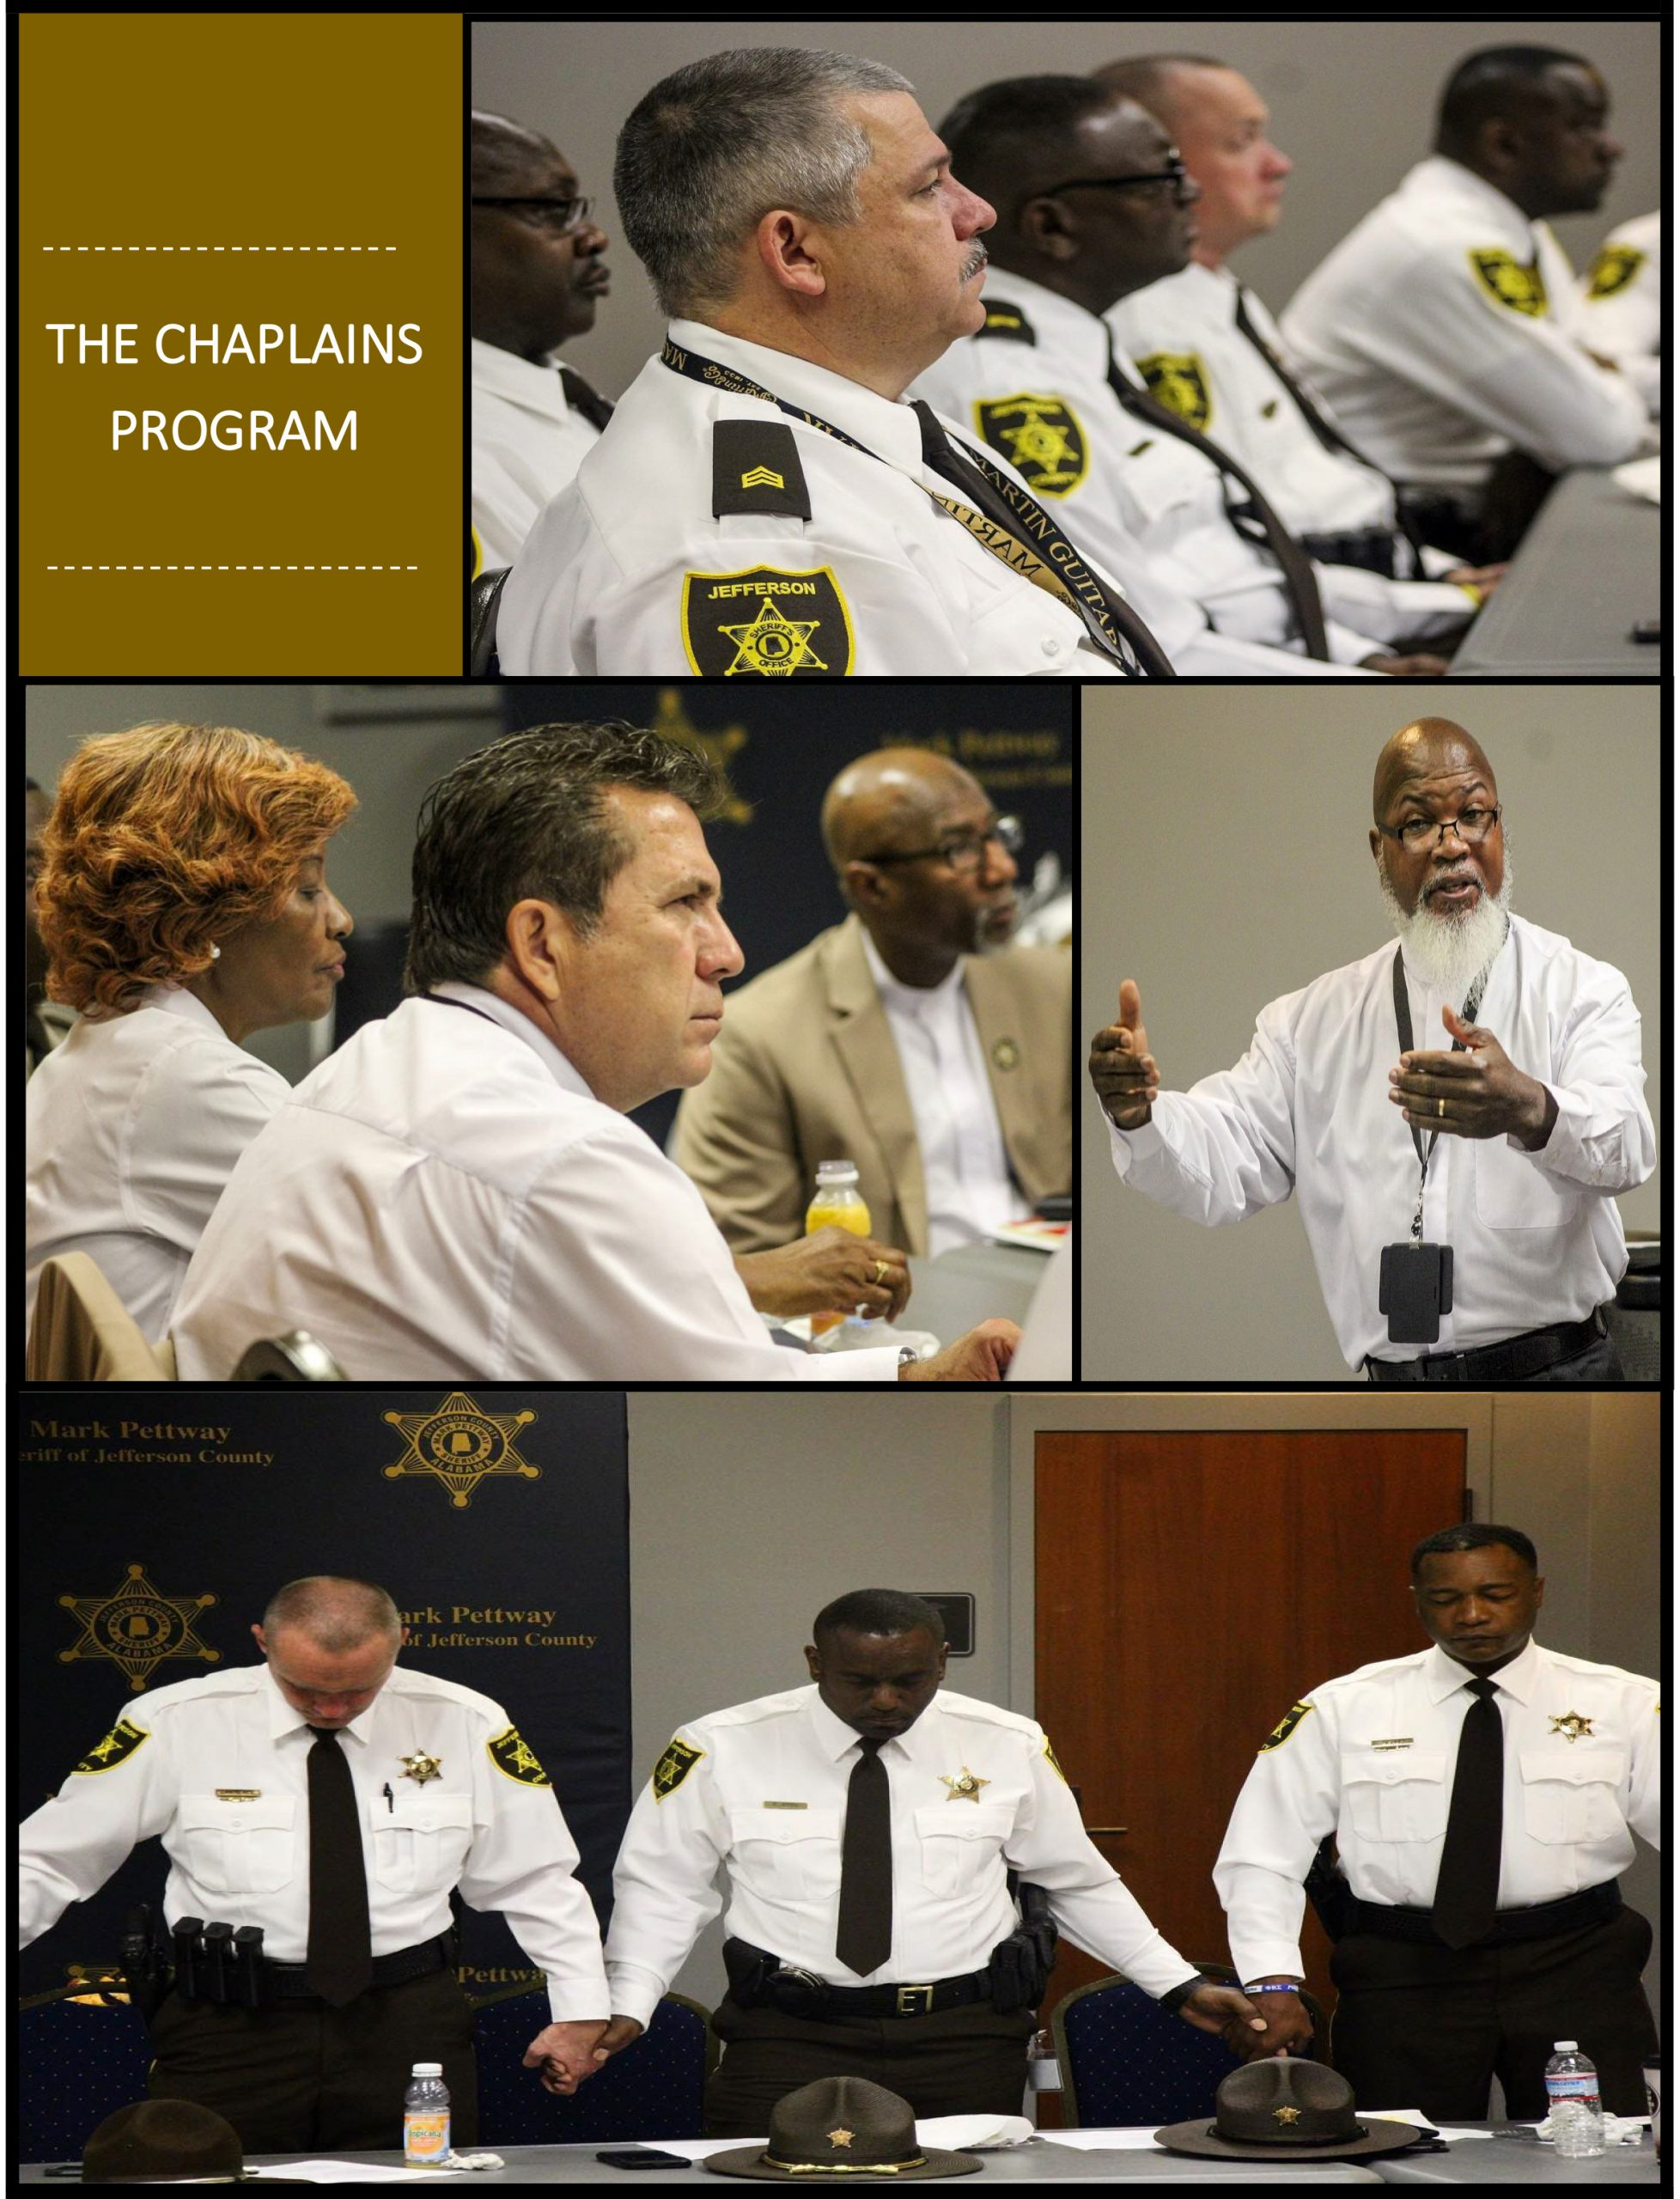 Jefferson-County-Sheriff-Department-Alabama-Chaplain-Program-Collage